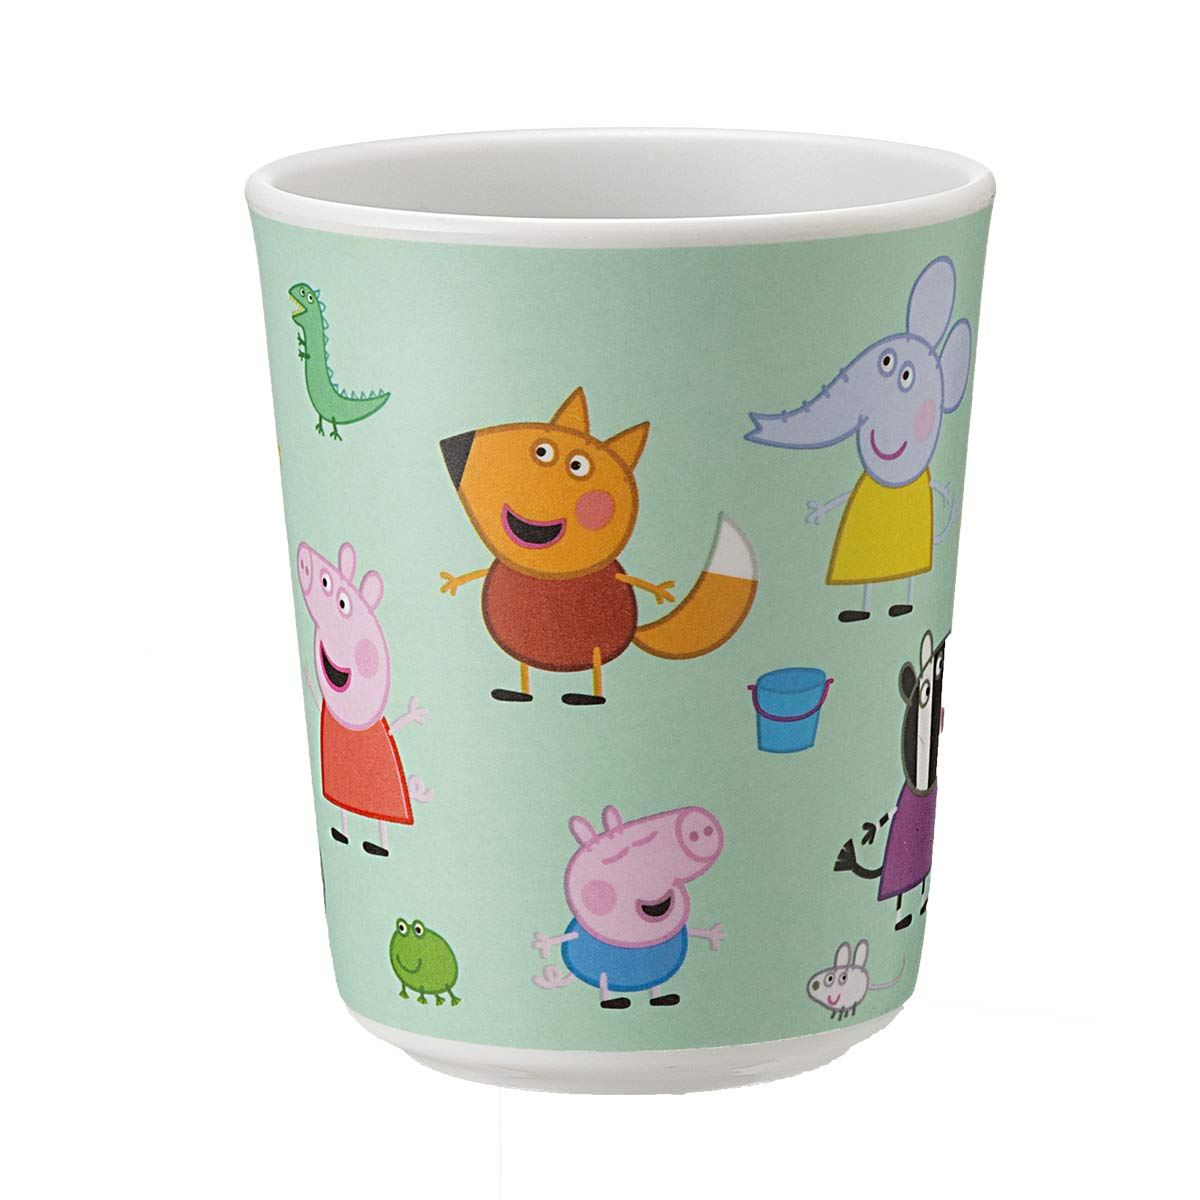 Petit Jour Paris Drinking Cup Peppa Pig to Drink Like a Big one